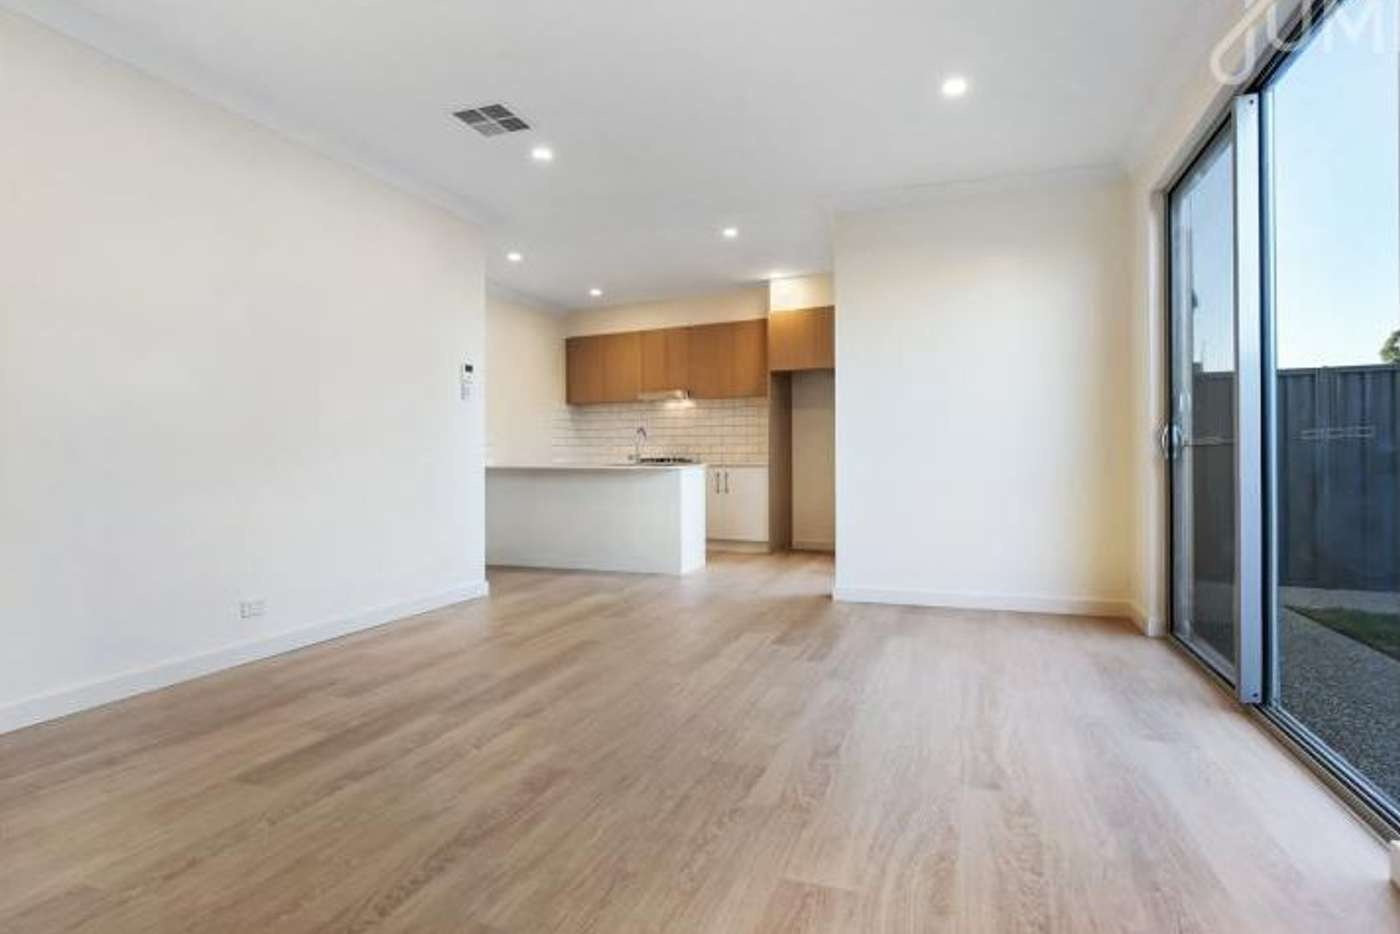 Fifth view of Homely townhouse listing, 1/2 Avenida Street, Campbelltown SA 5074